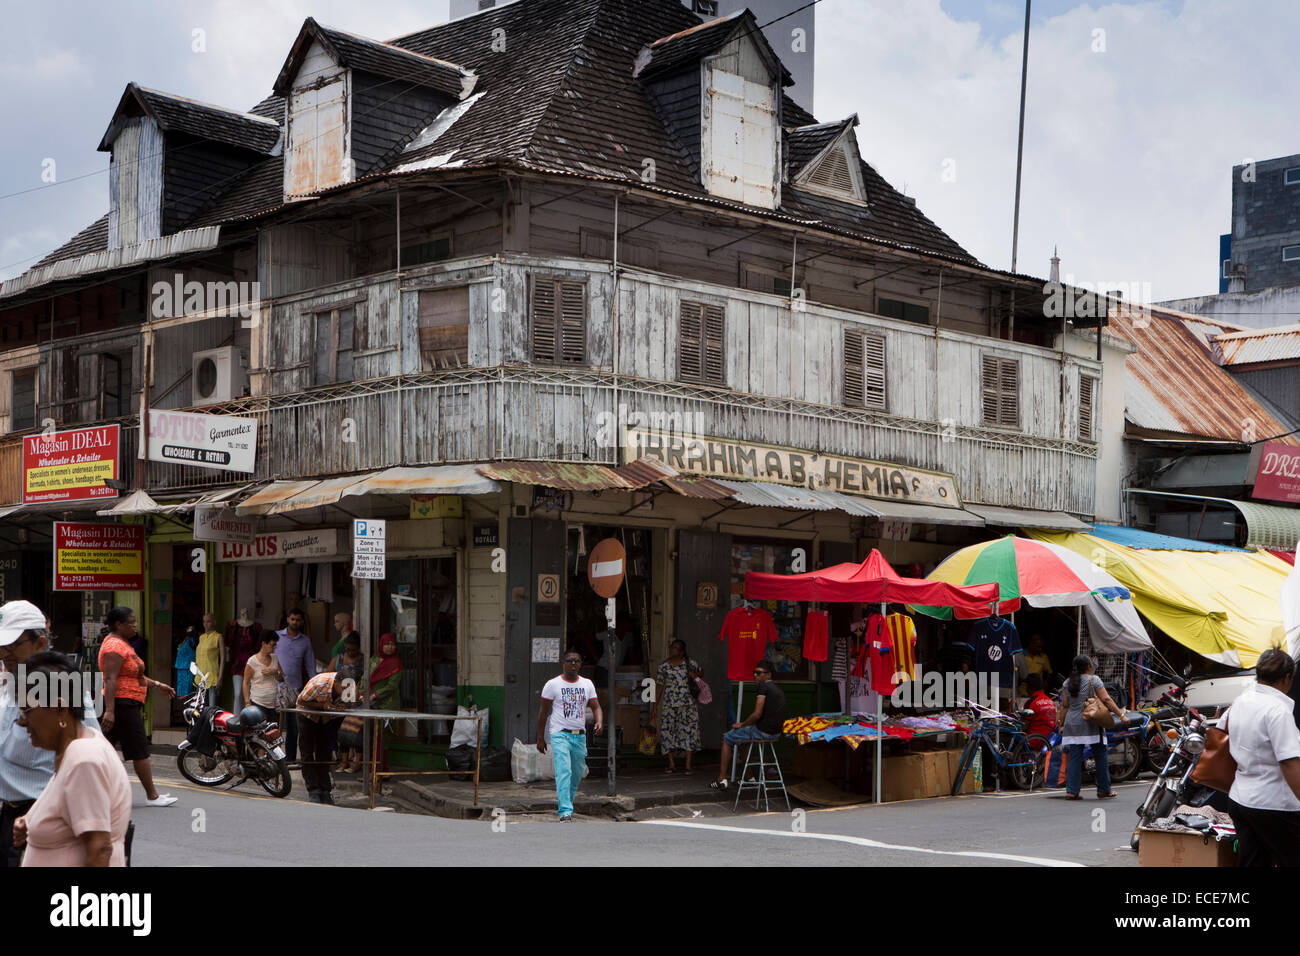 Mauritius, Port Louis, Rue Royale, old Moslem owned corner shop, in colonial era building - Stock Image